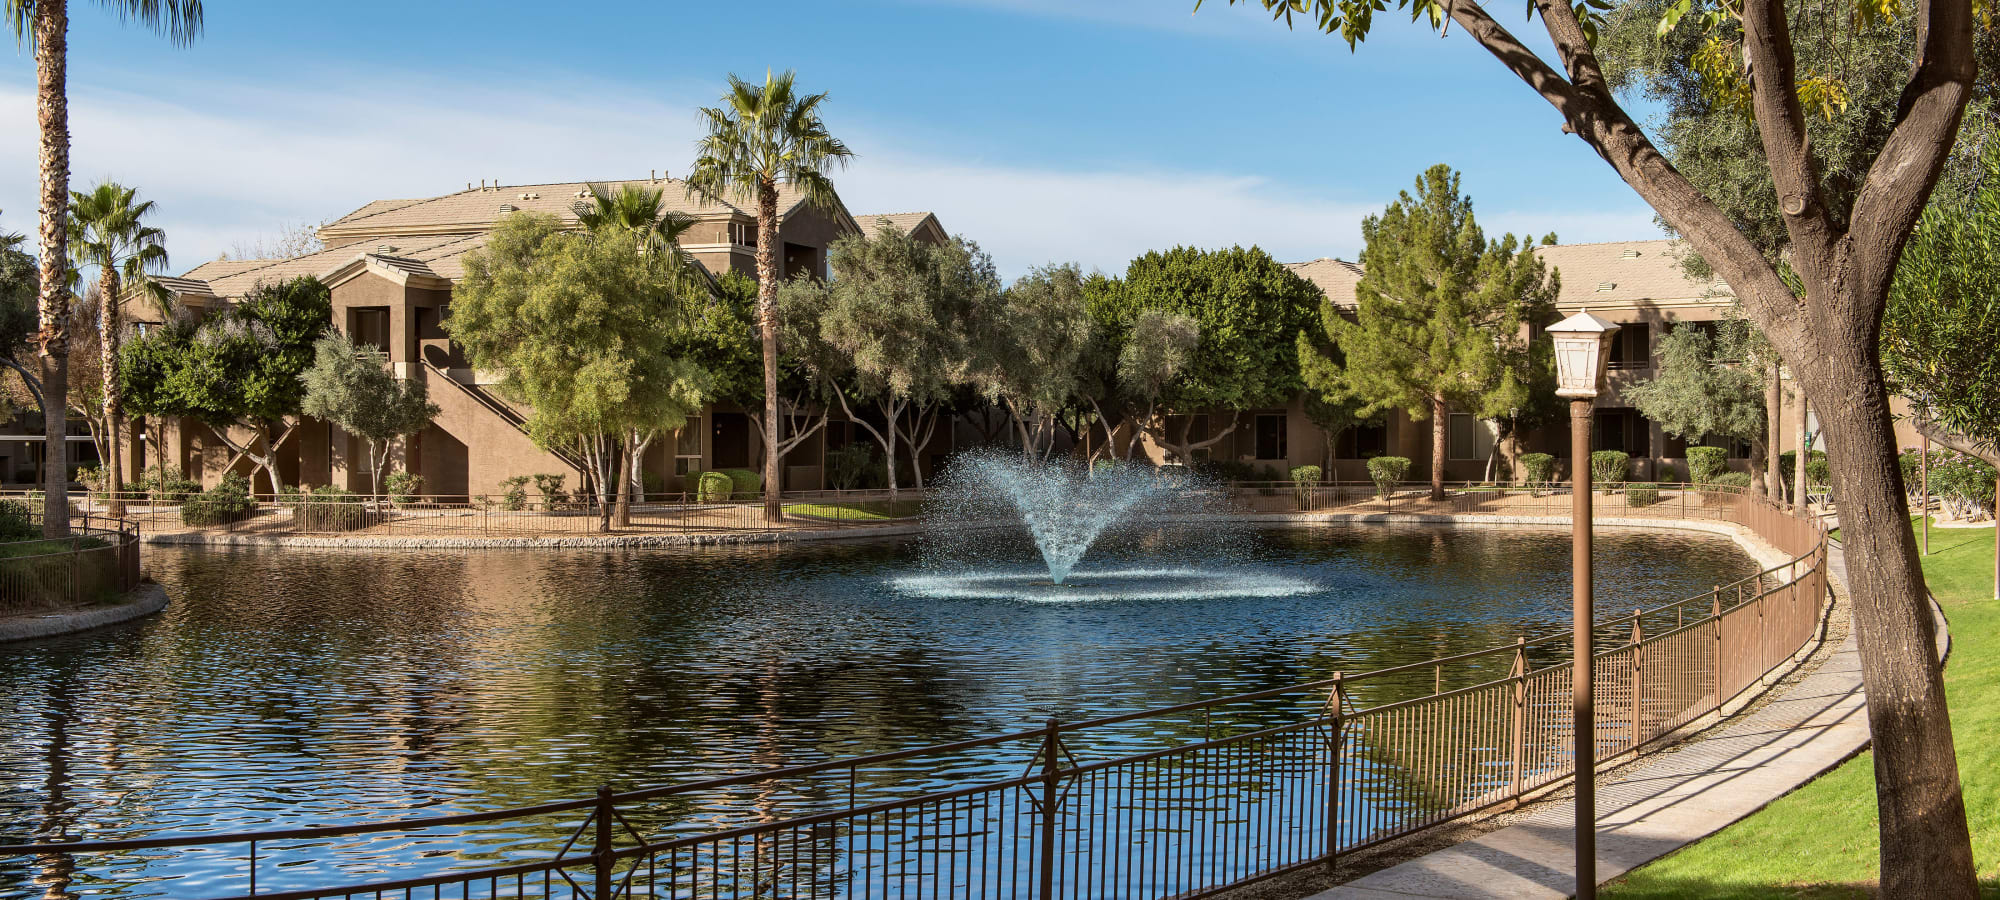 Resident community pond at Laguna at Arrowhead Ranch in Glendale, Arizona